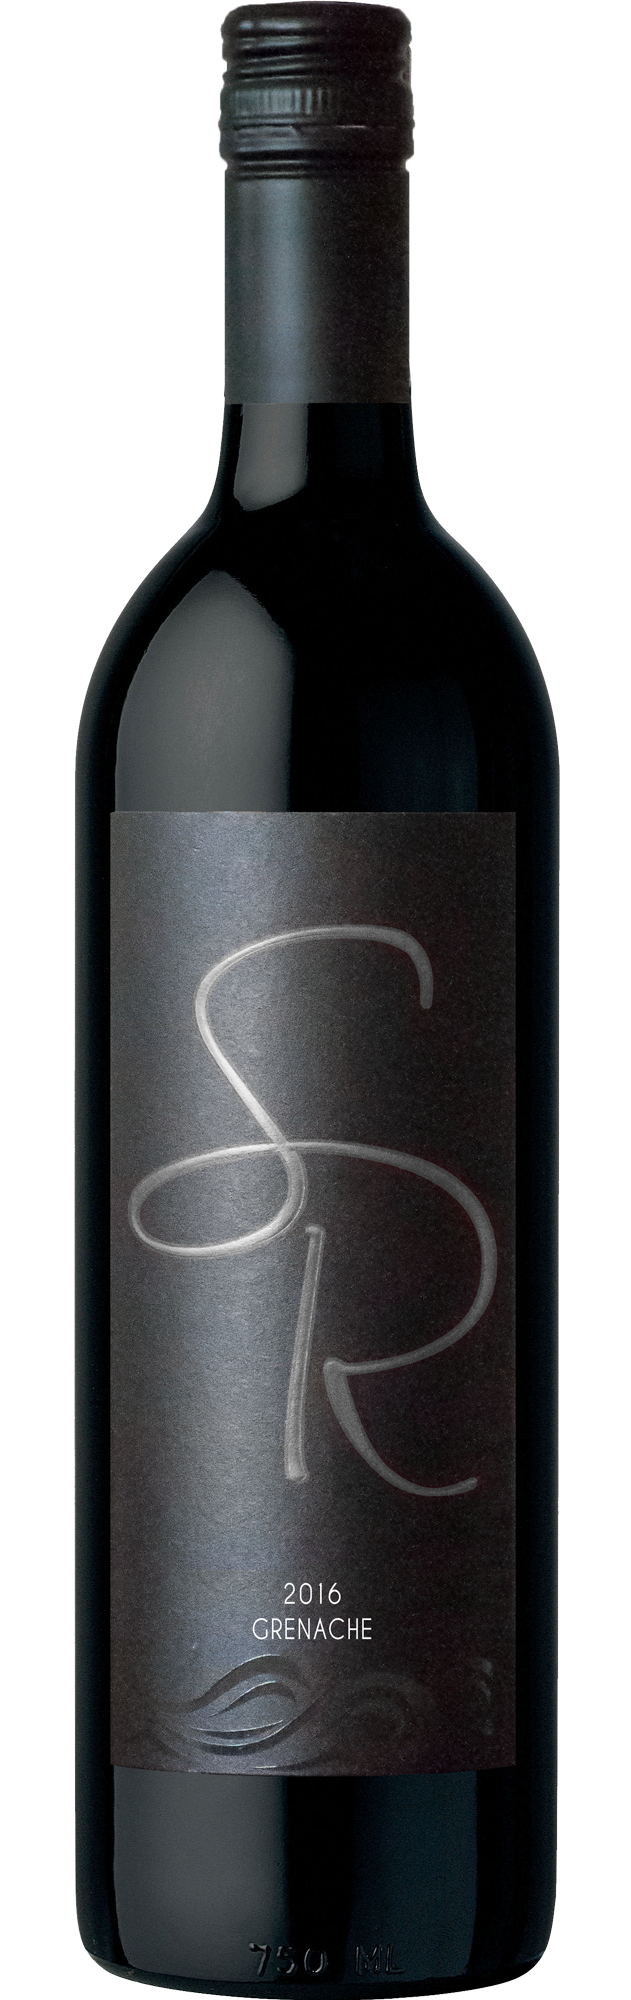 Product Image for 2016 Surfrider Grenache